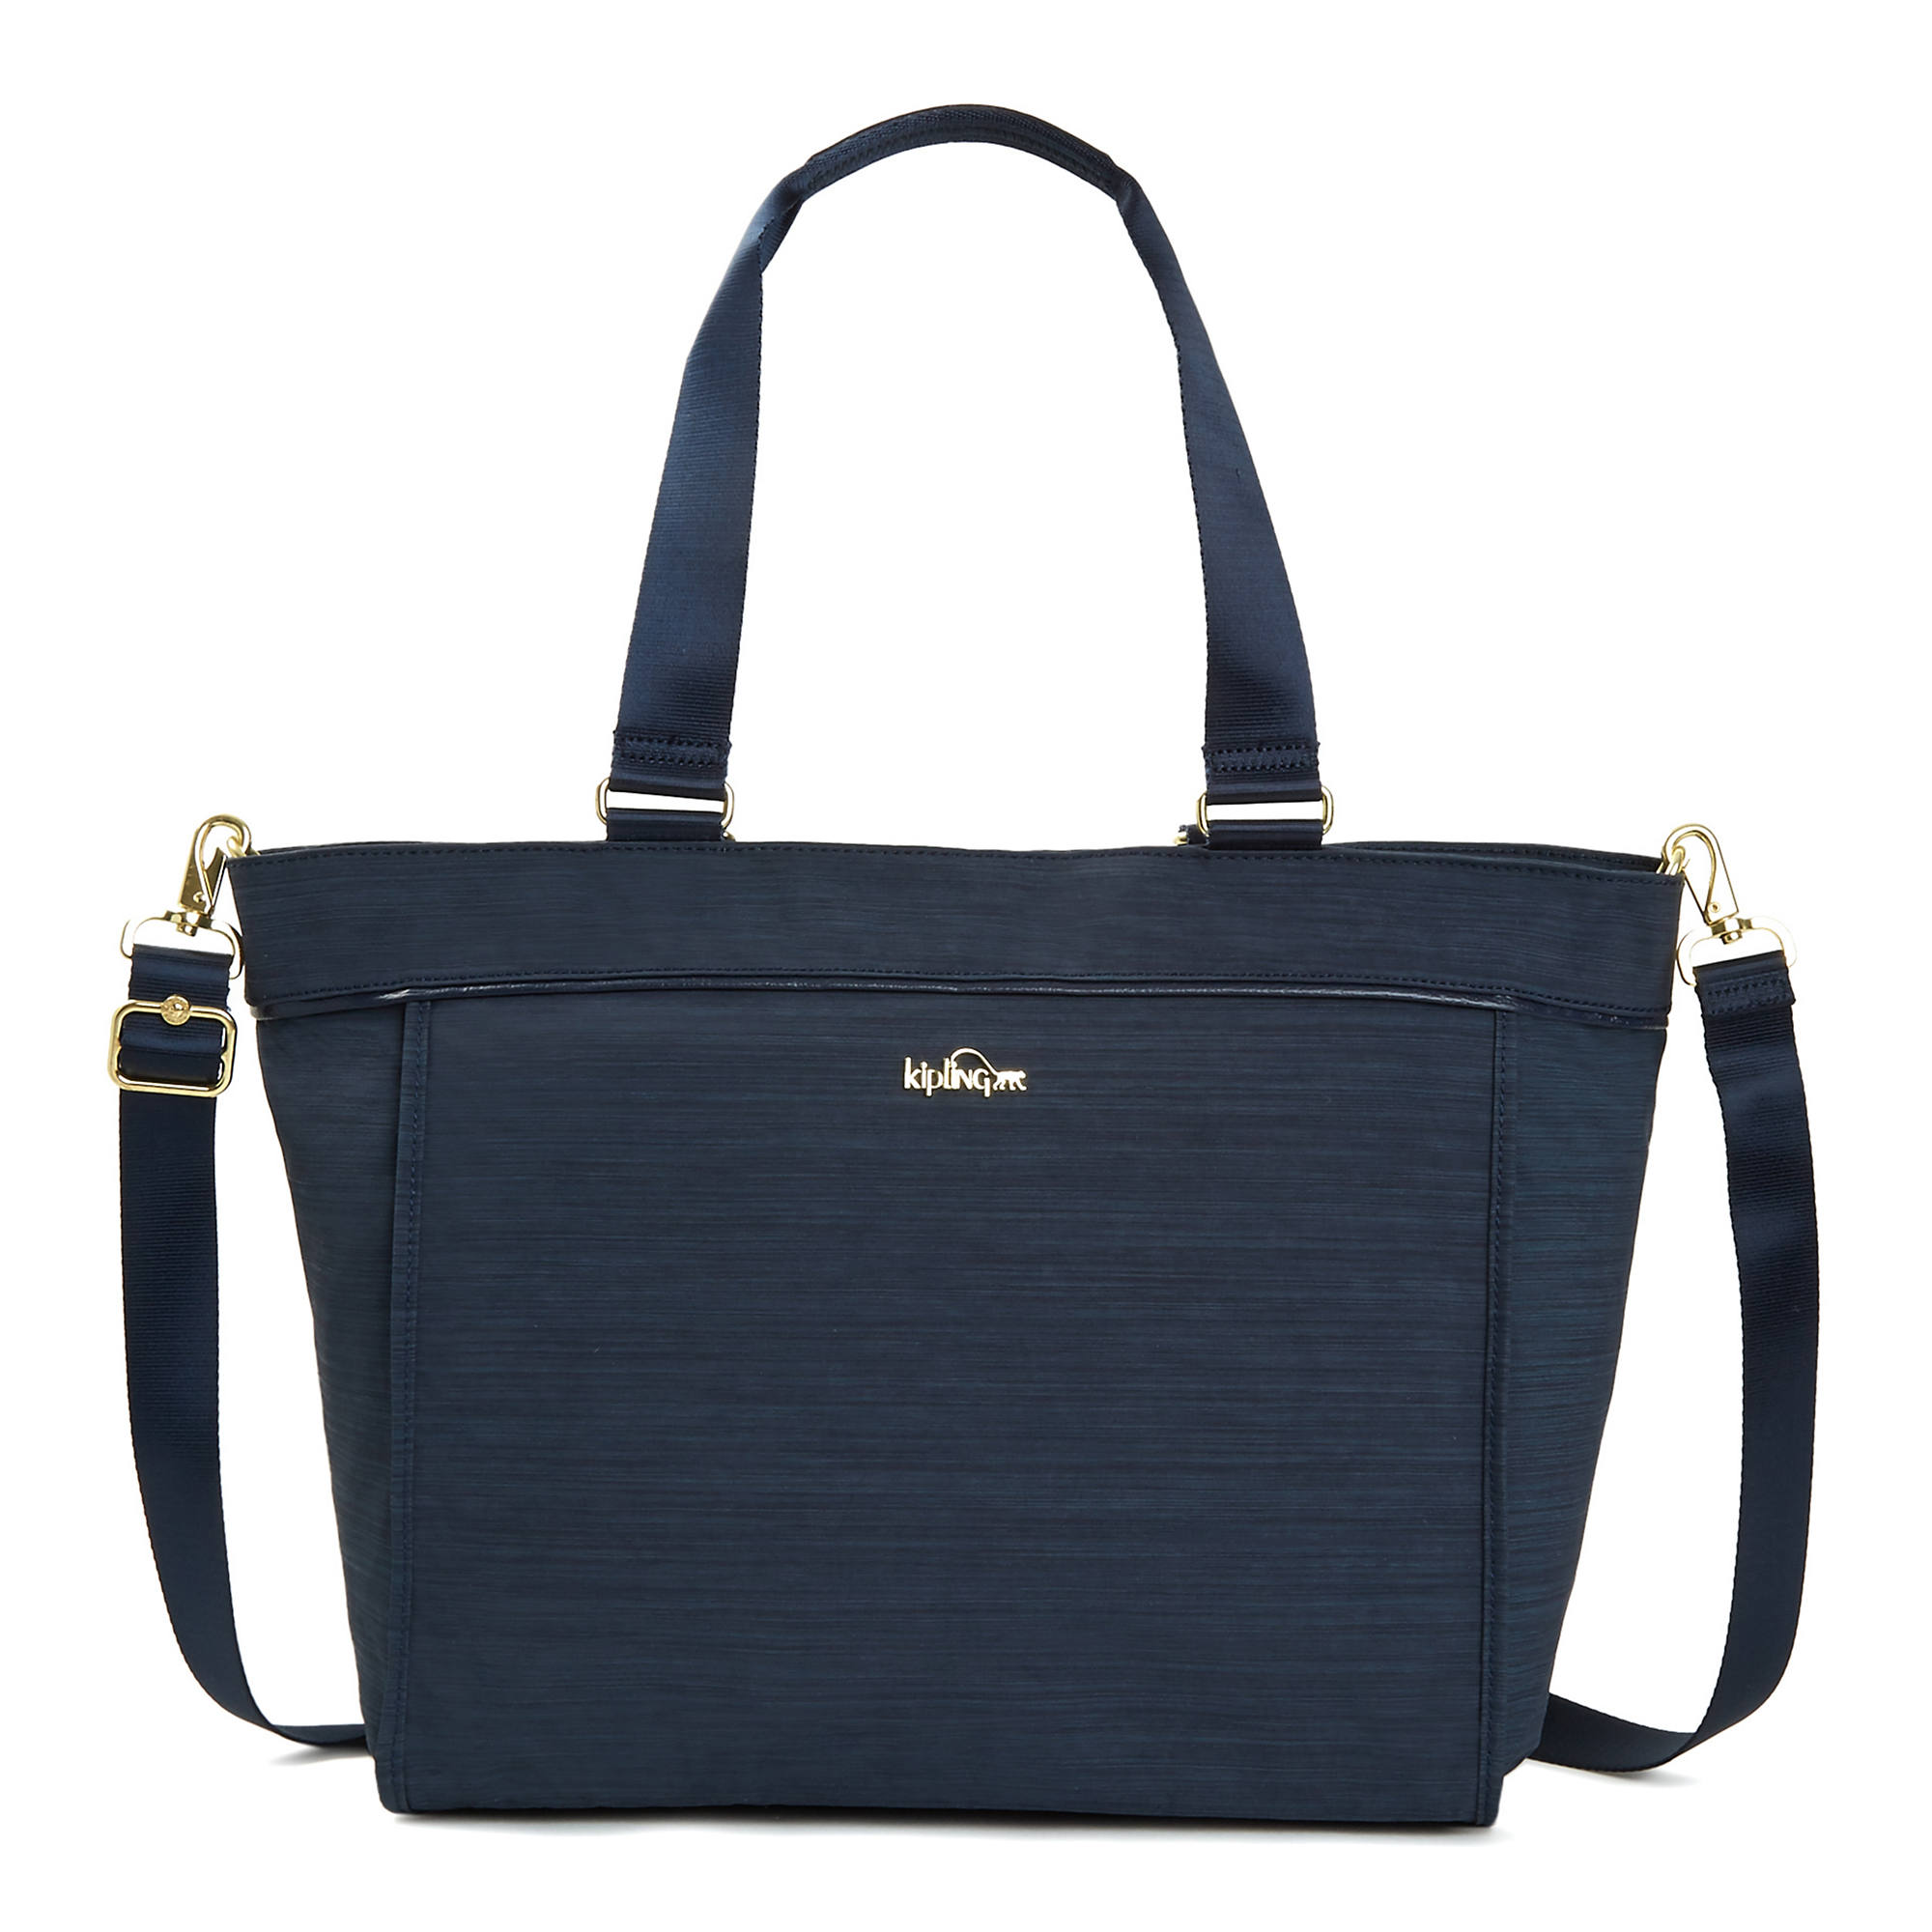 New Per Large Tote True Dazz Navy